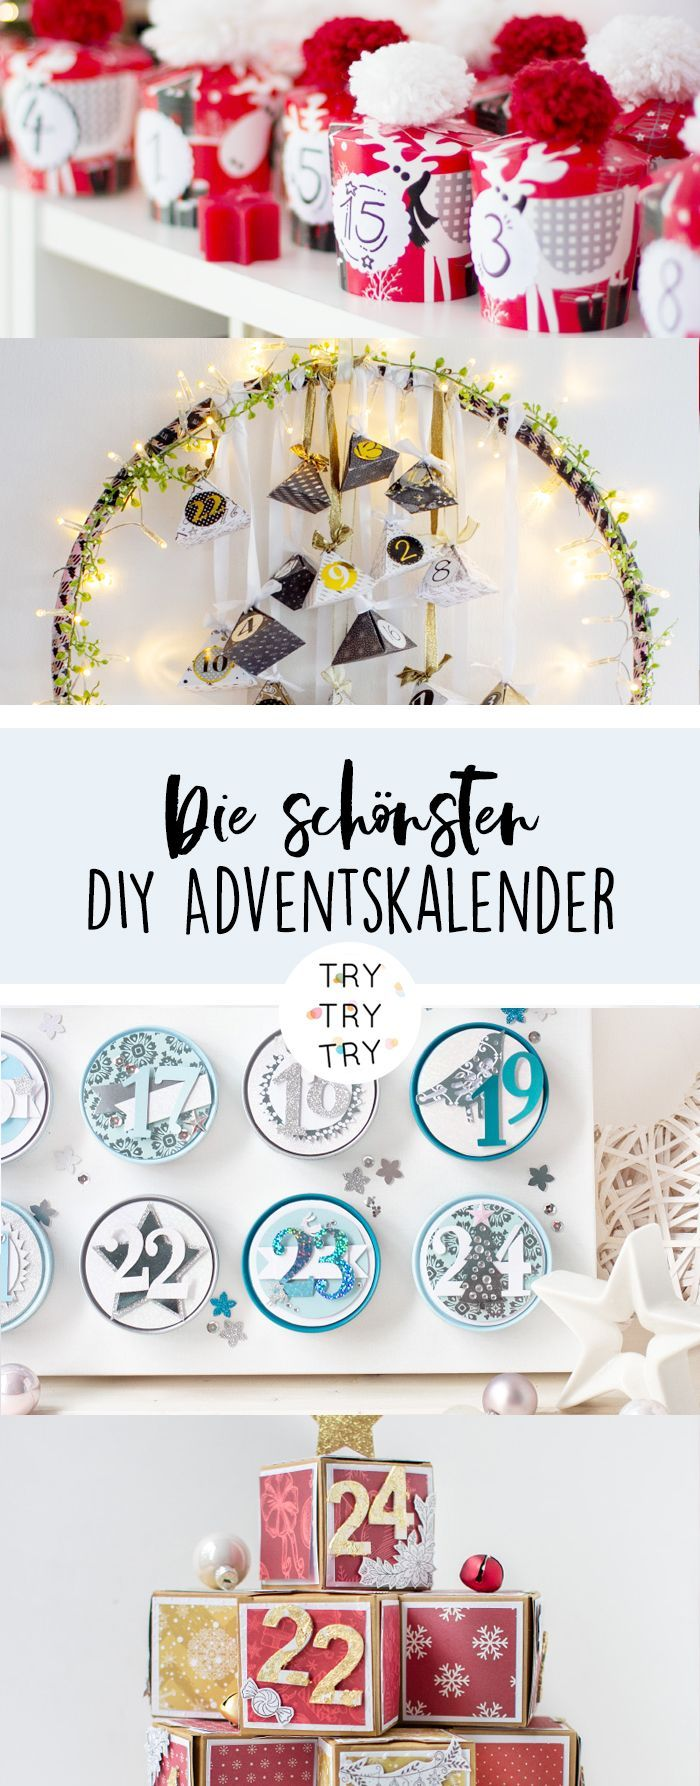 diy adventskalender die sch nsten adventskalender adventskalender basteln sch ne. Black Bedroom Furniture Sets. Home Design Ideas